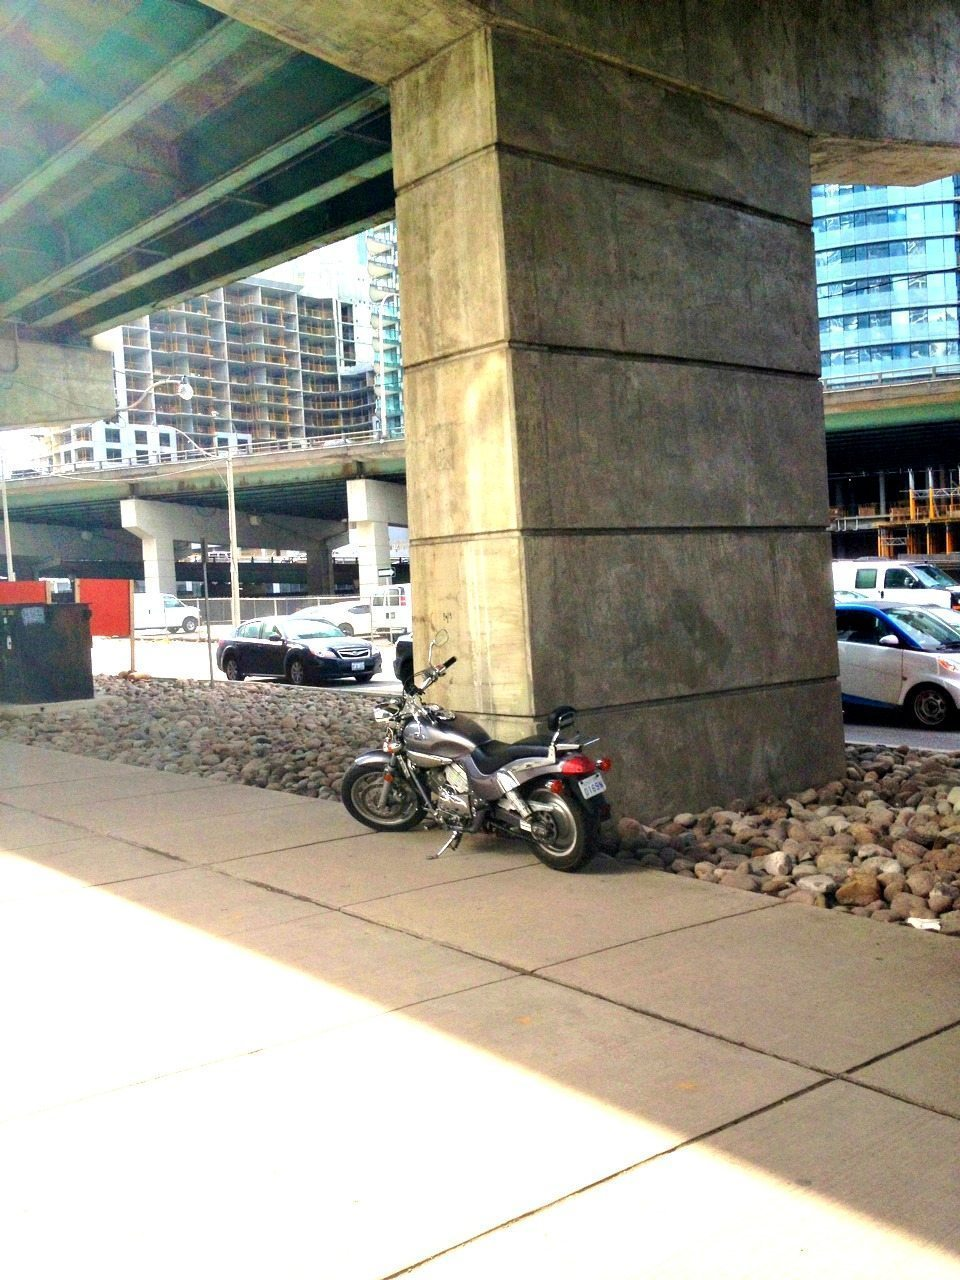 Downtown Toronto motorcyle parking under the Gardiner Expressway